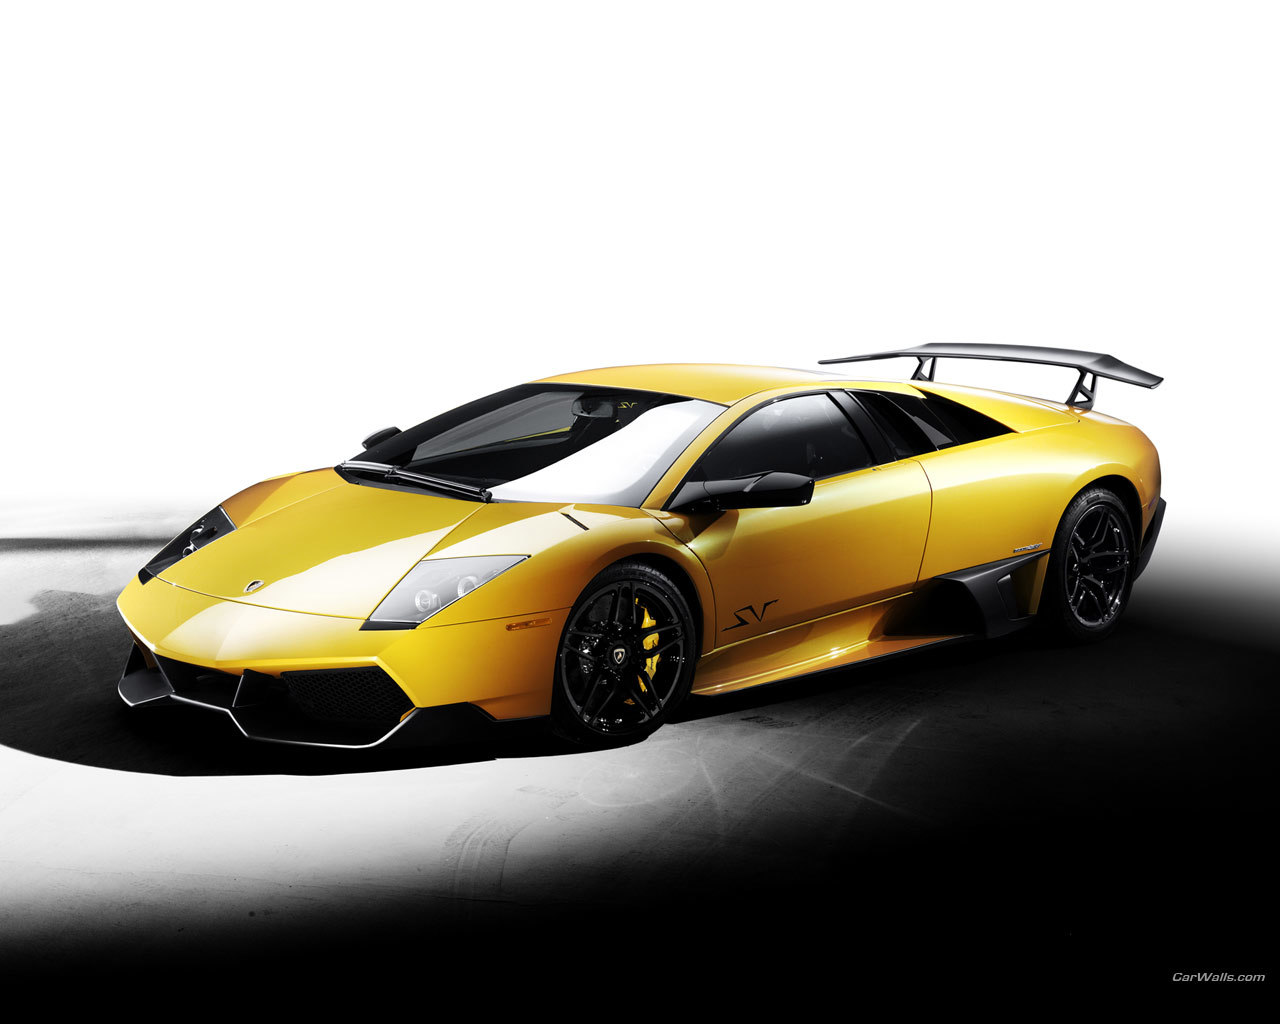 cars Sports Lamborghini lamborghini HD Wallpaper